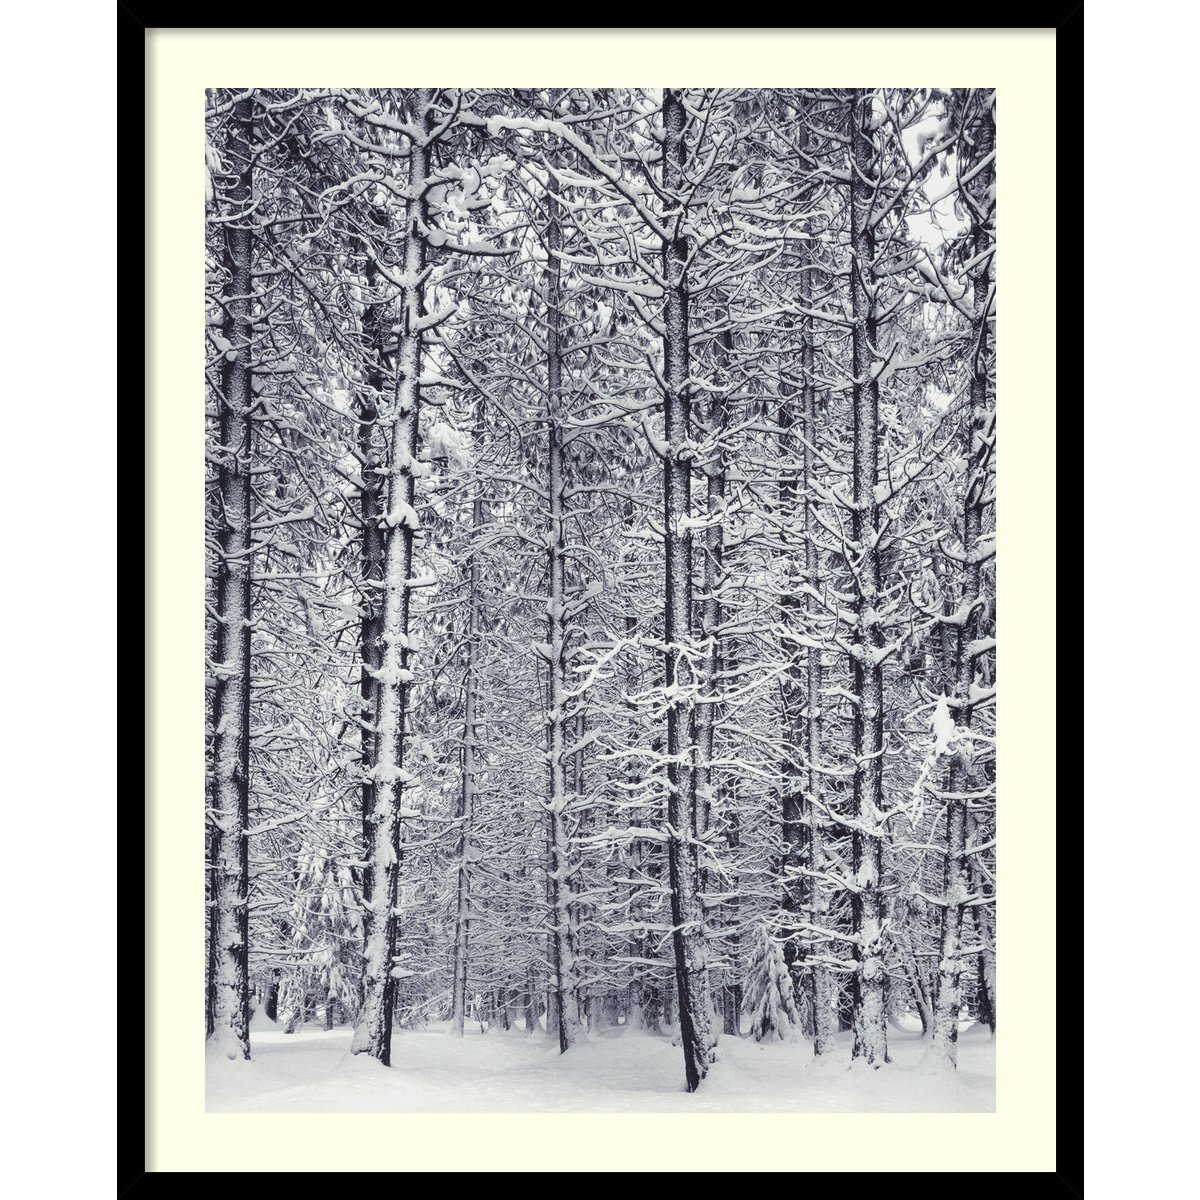 Framed Art Print, 'Pine Forest in the Snow, Yosemite National Park' by Ansel Adams: Outer Size 25 x 31'' by Amanti Art